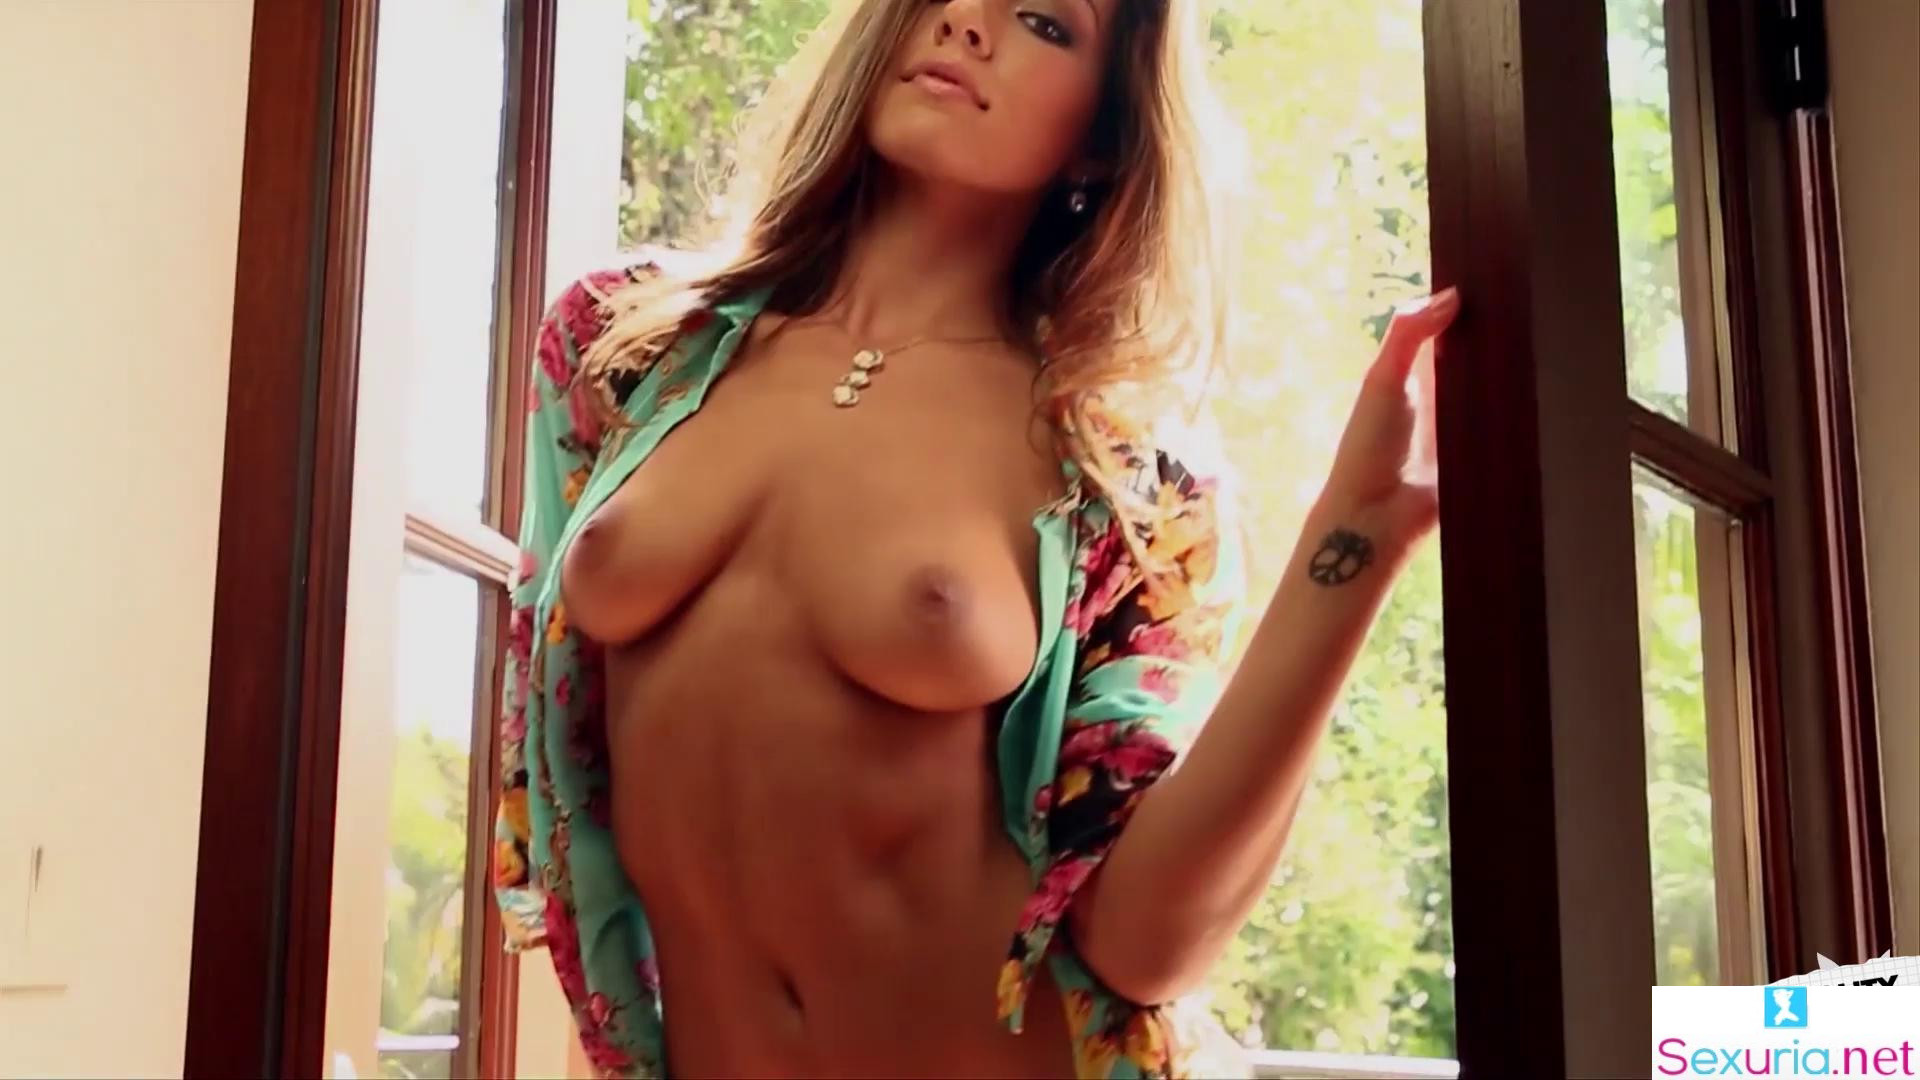 Playboy Plus - June Playmates Of The Decade